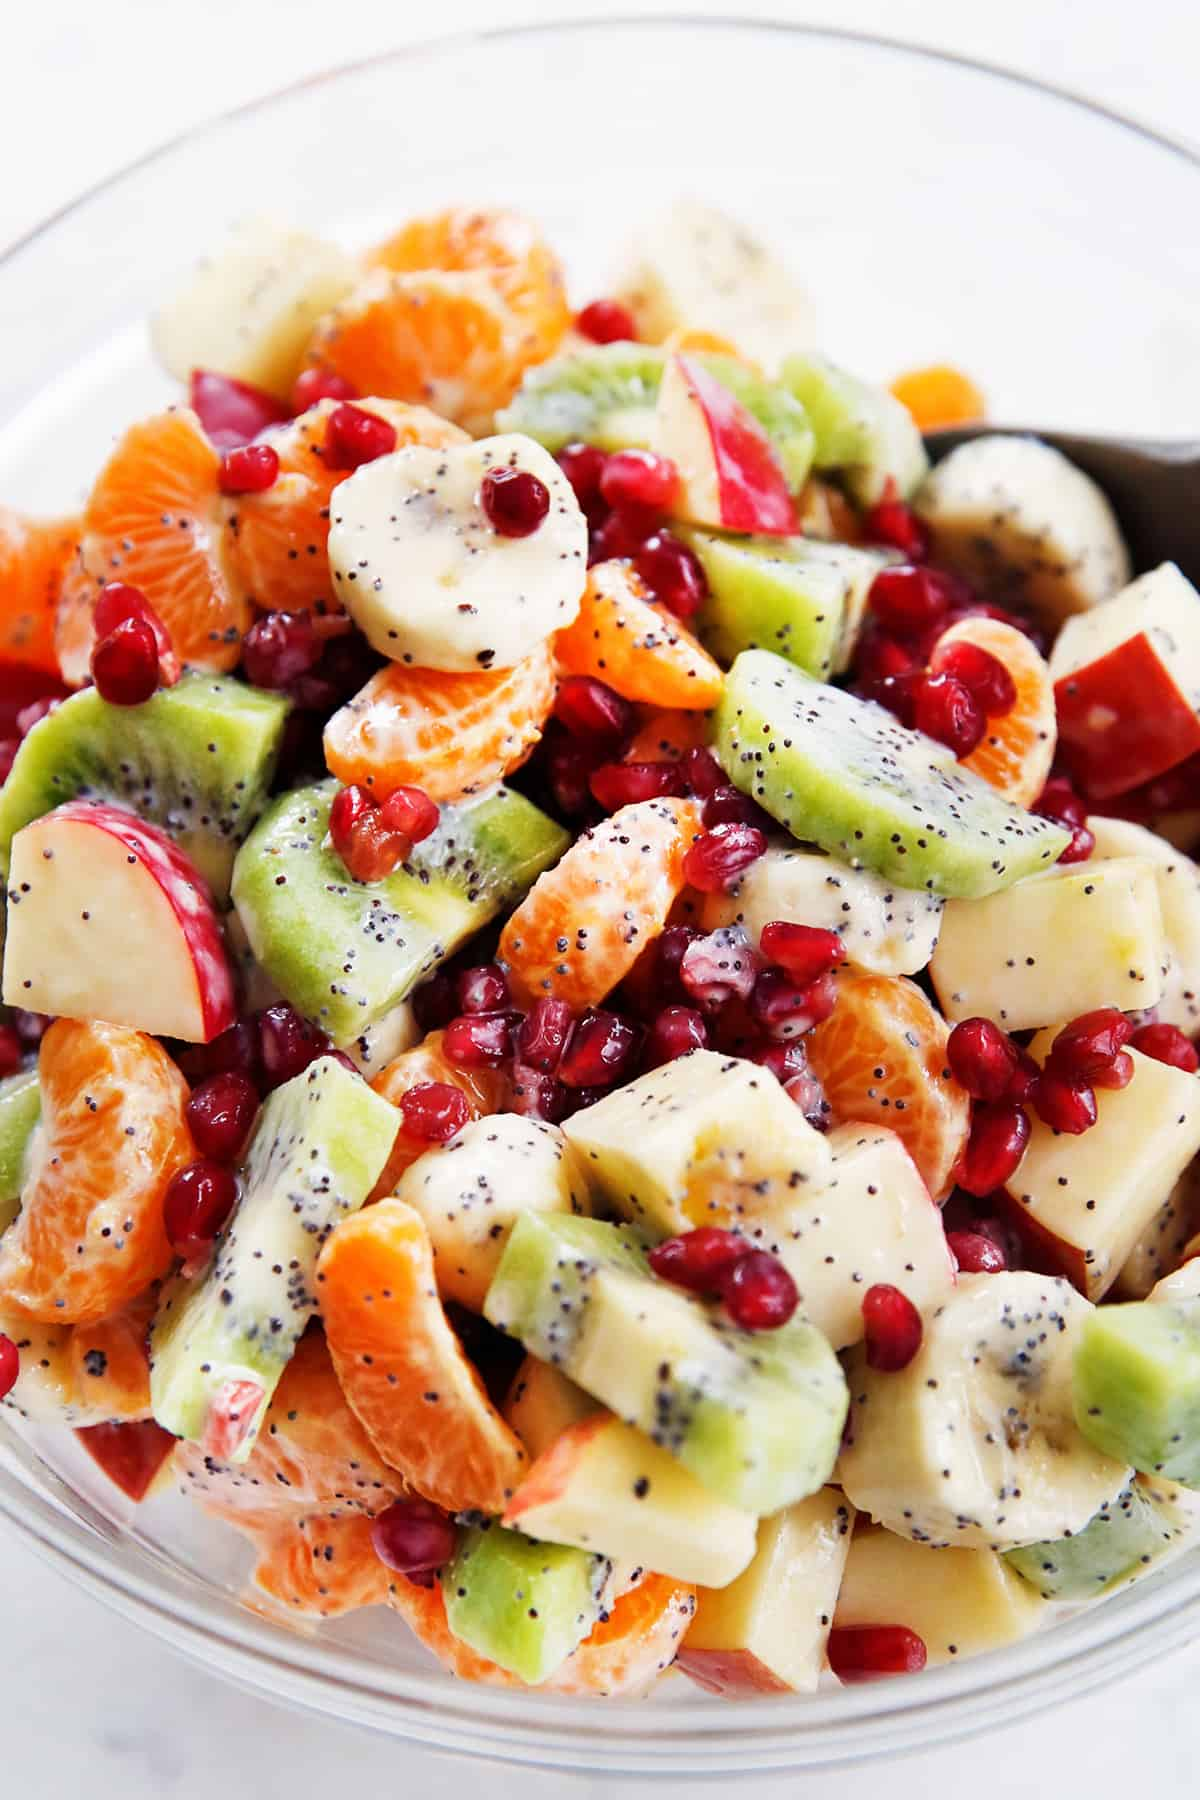 A bowl of winter fruit salad with winter fruit and greek yogurt dressing.